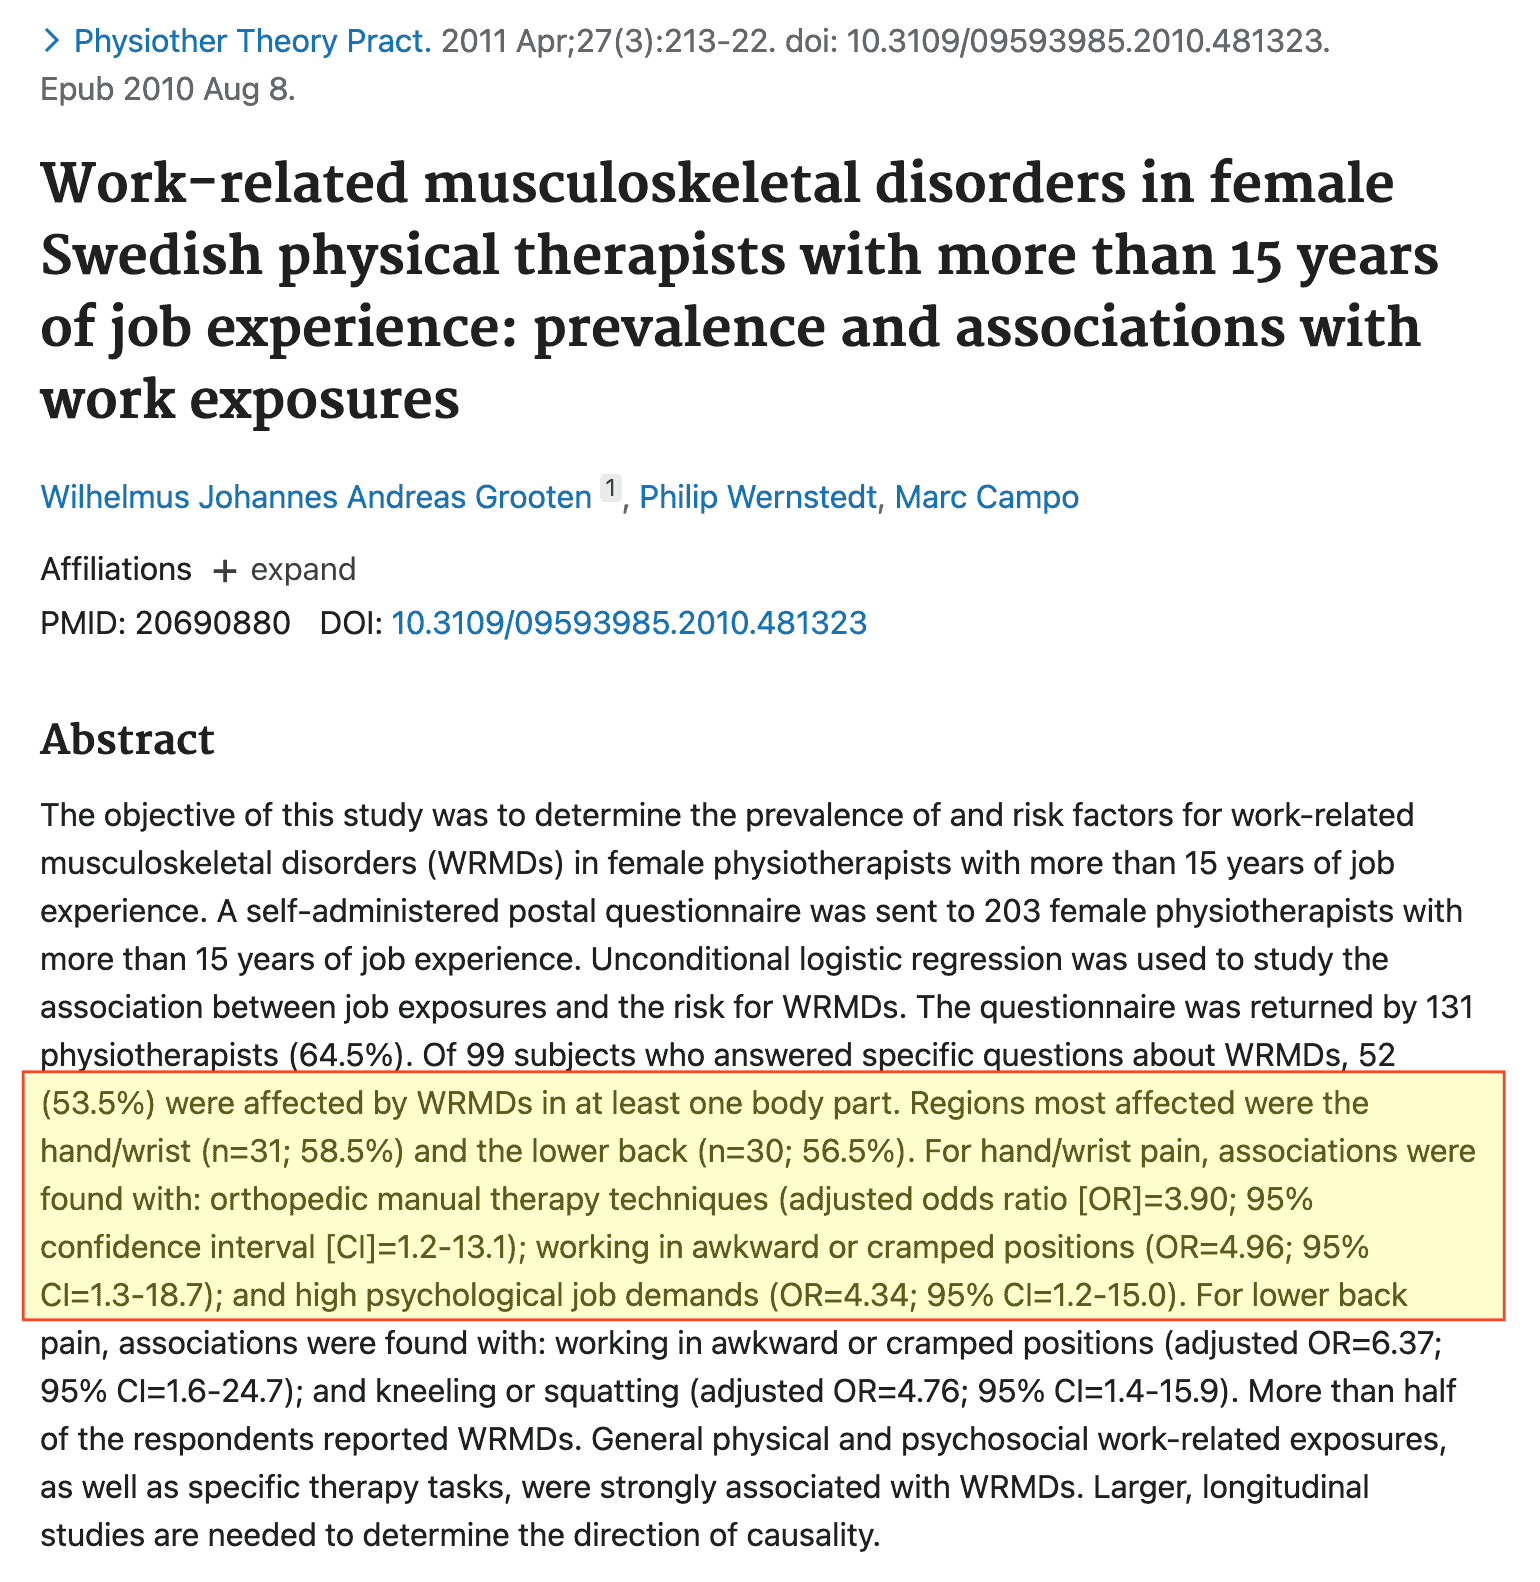 Studio Problemi mano Fisioterapisti Work-related musculoskeletal disorders in female Swedish physical therapists with more than 15 years of job experience - Prevalence and associations with work exposures - Physiother Theory Pract 2011